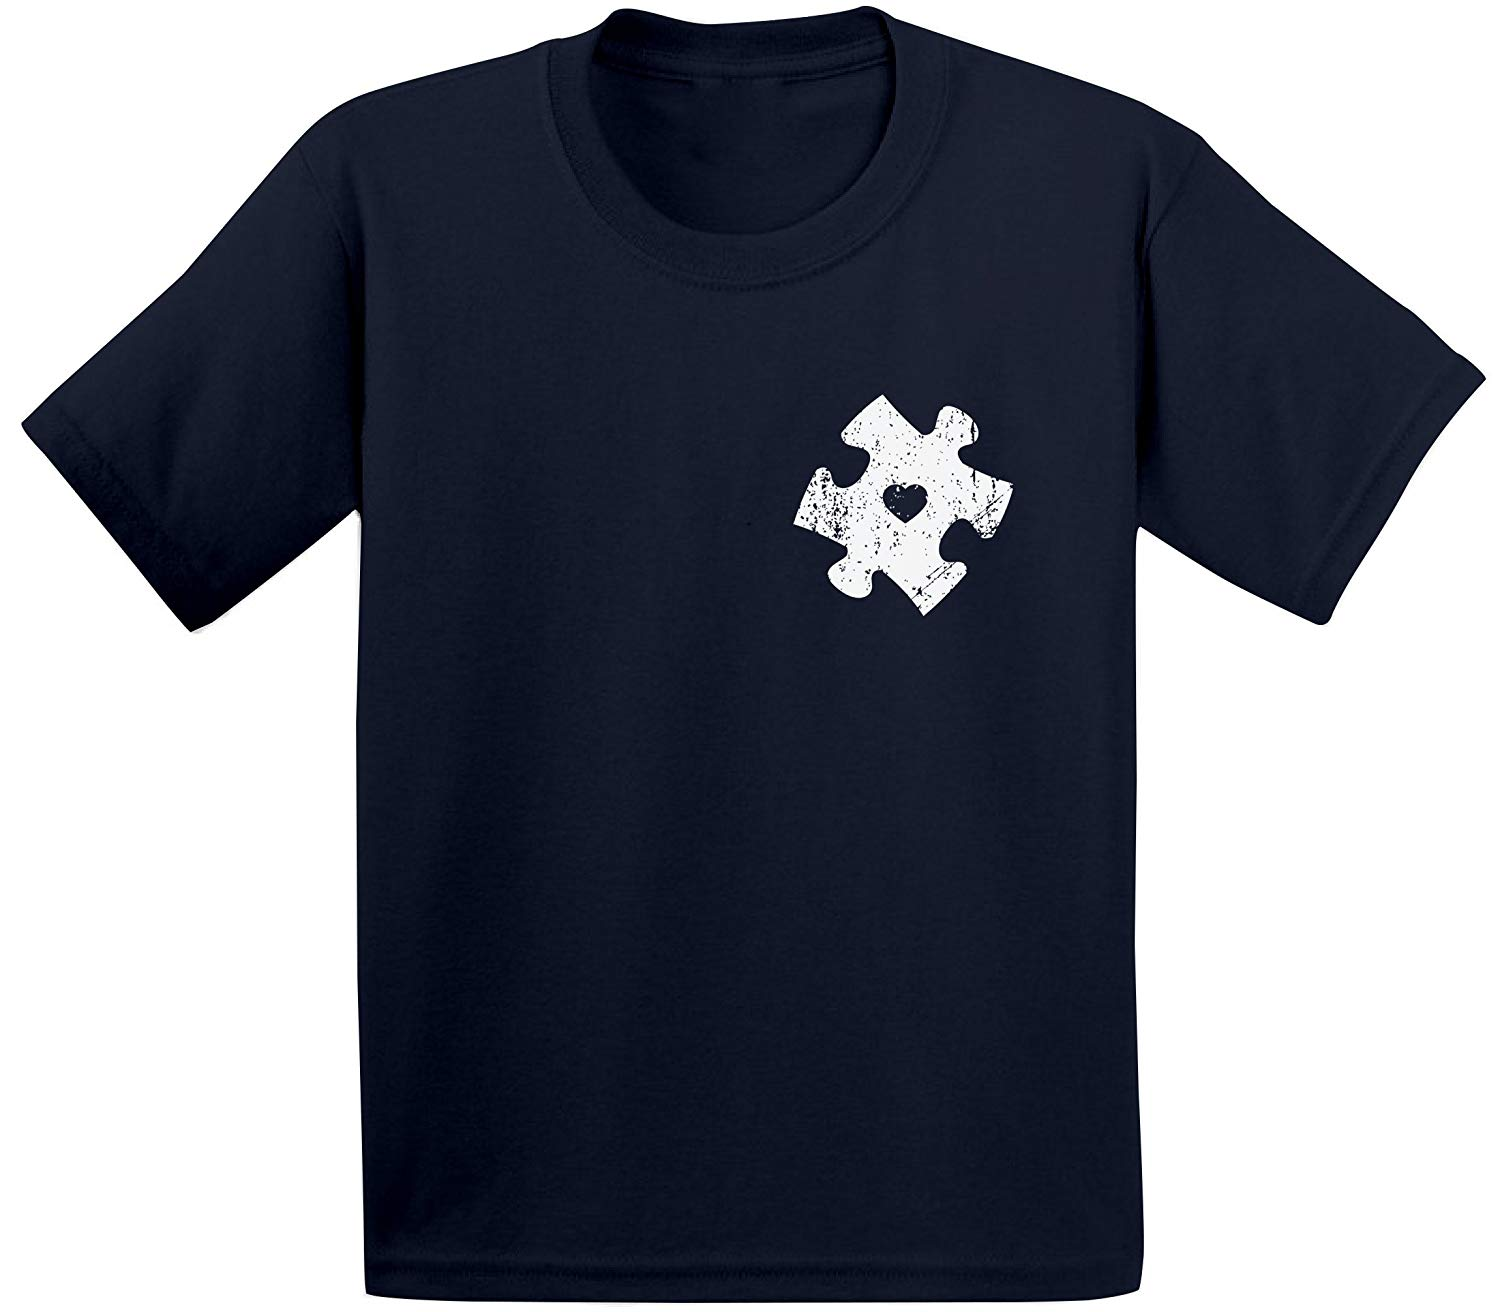 93683ab8 Get Quotations · Awkward Styles Puzzle Autism Shirts Kids Autism Awareness  Shirts for Toddlers